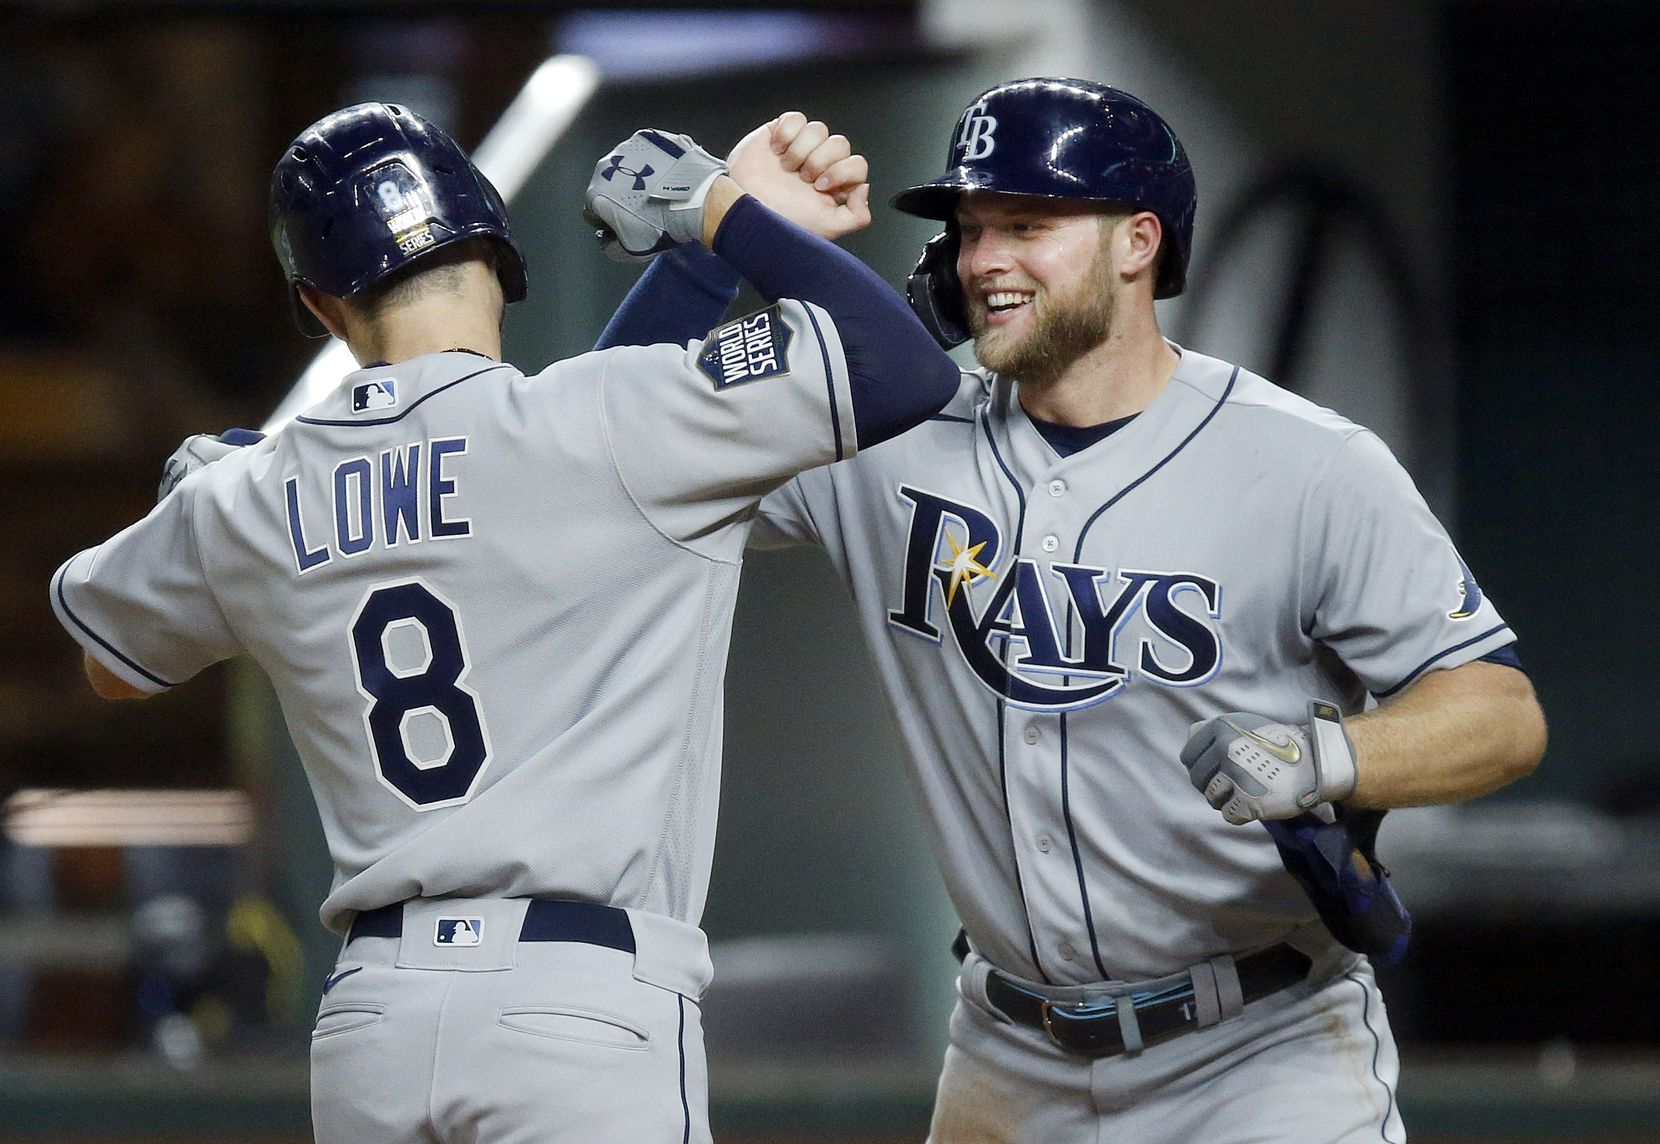 Tampa Bay Rays Brandon Lowe (8) is congratulated by teammate Austin Meadows after scoring him on a two-run homer against the Los Angeles Dodgers during the fifth inning in Game 2 of the World Series at Globe Life Field in Arlington, Wednesday, October 21, 2020. (Tom Fox/The Dallas Morning News)